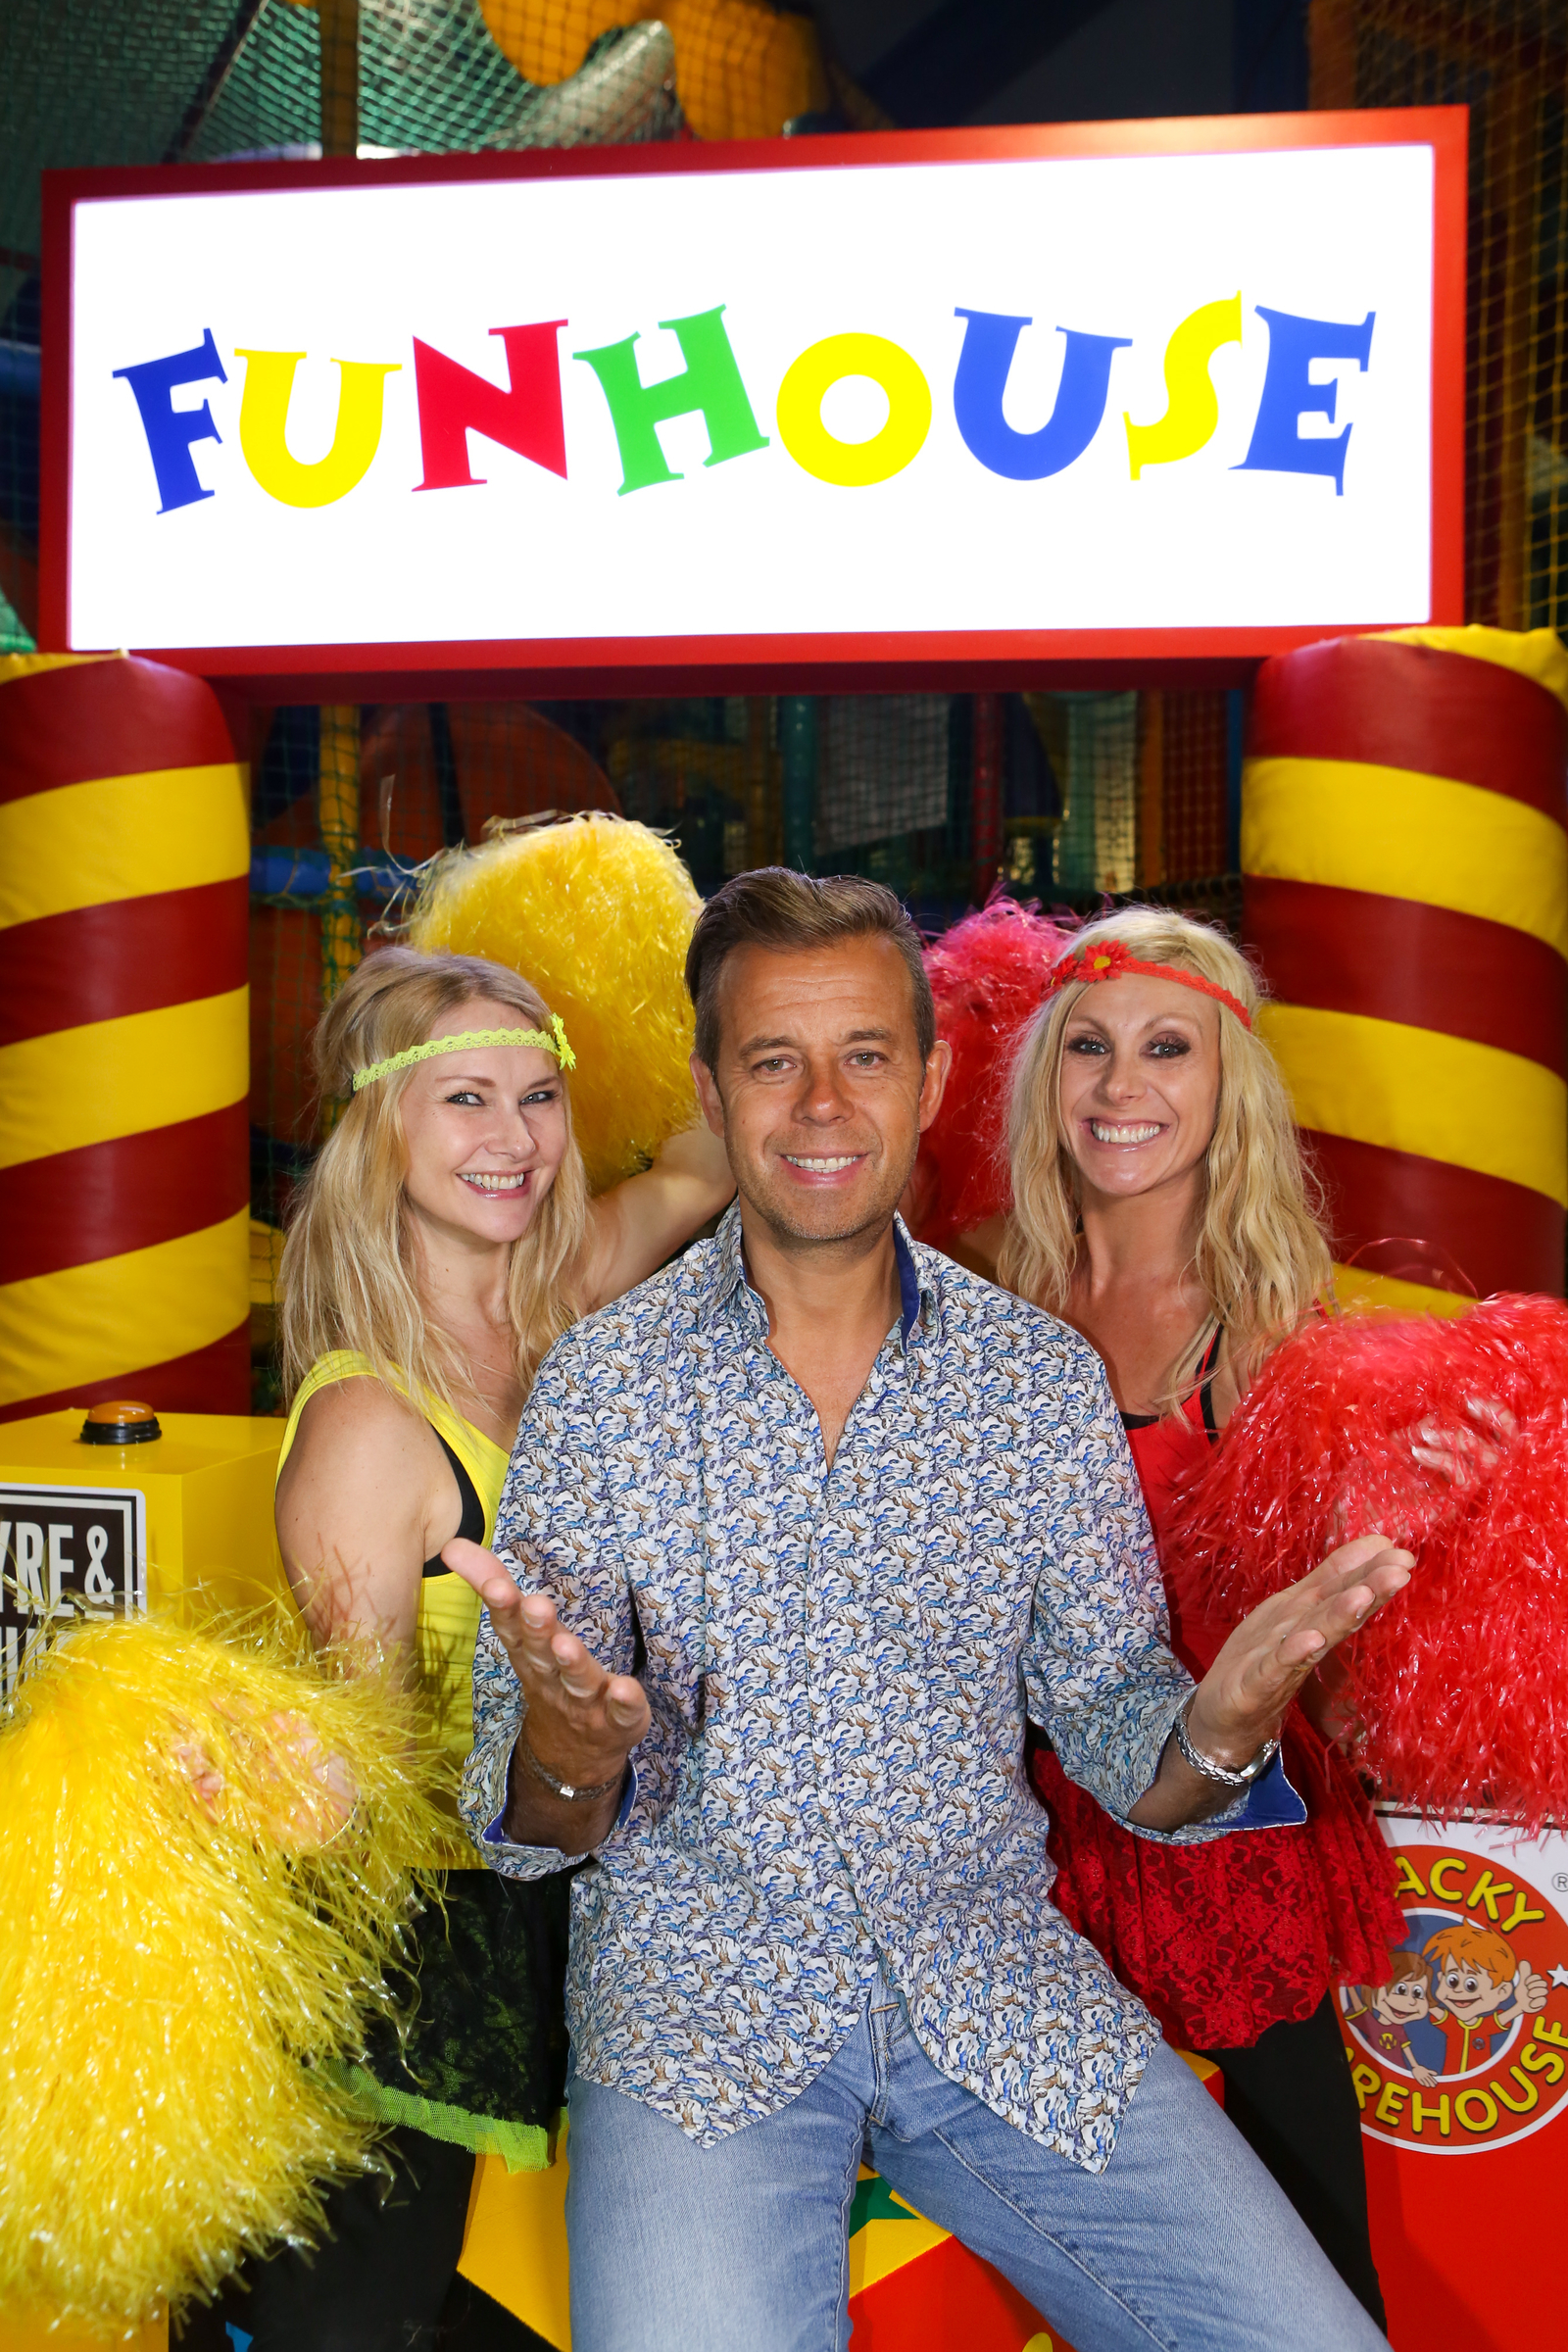 For one day only Fayre & Square and Wacky Warehouse are turning an existing Wacky Warehouse into a Family Fun House, based on children's TV show  Fun House, presented by Pat Sharp and the twins, Melanie and Martina.  We have selected four families (consisting of one adult and one child) to each take part in the Fun House day which will include a quiz round, parents getting dunked in gunge, go-karting, a build a burger task and then the family with the most points will have the opportunity to take on the Fun House (taking place in the Wacky Warehouse) and win great prizes. This event takes place on Saturday 13 June at The Fradley Arms in Lichfield . Picture by Shaun Fellows / Shine Pix